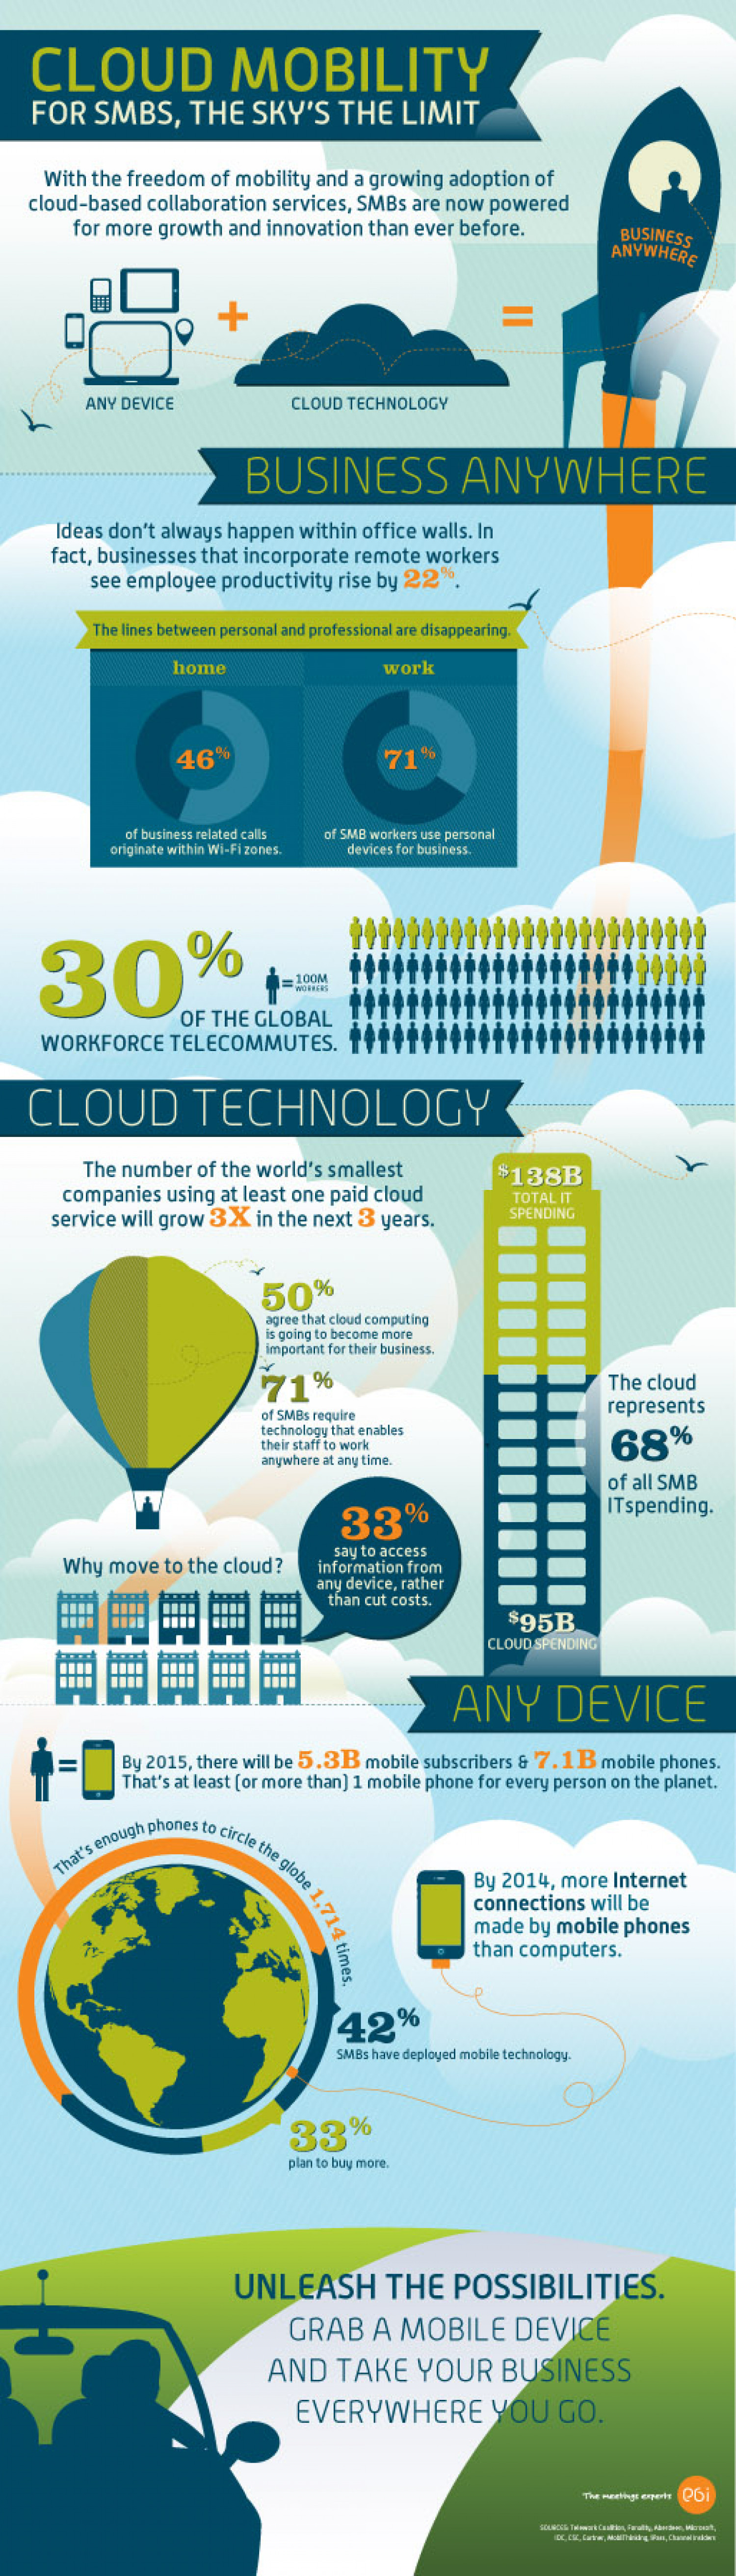 Cloud Mobility = Power for SMBs Infographic